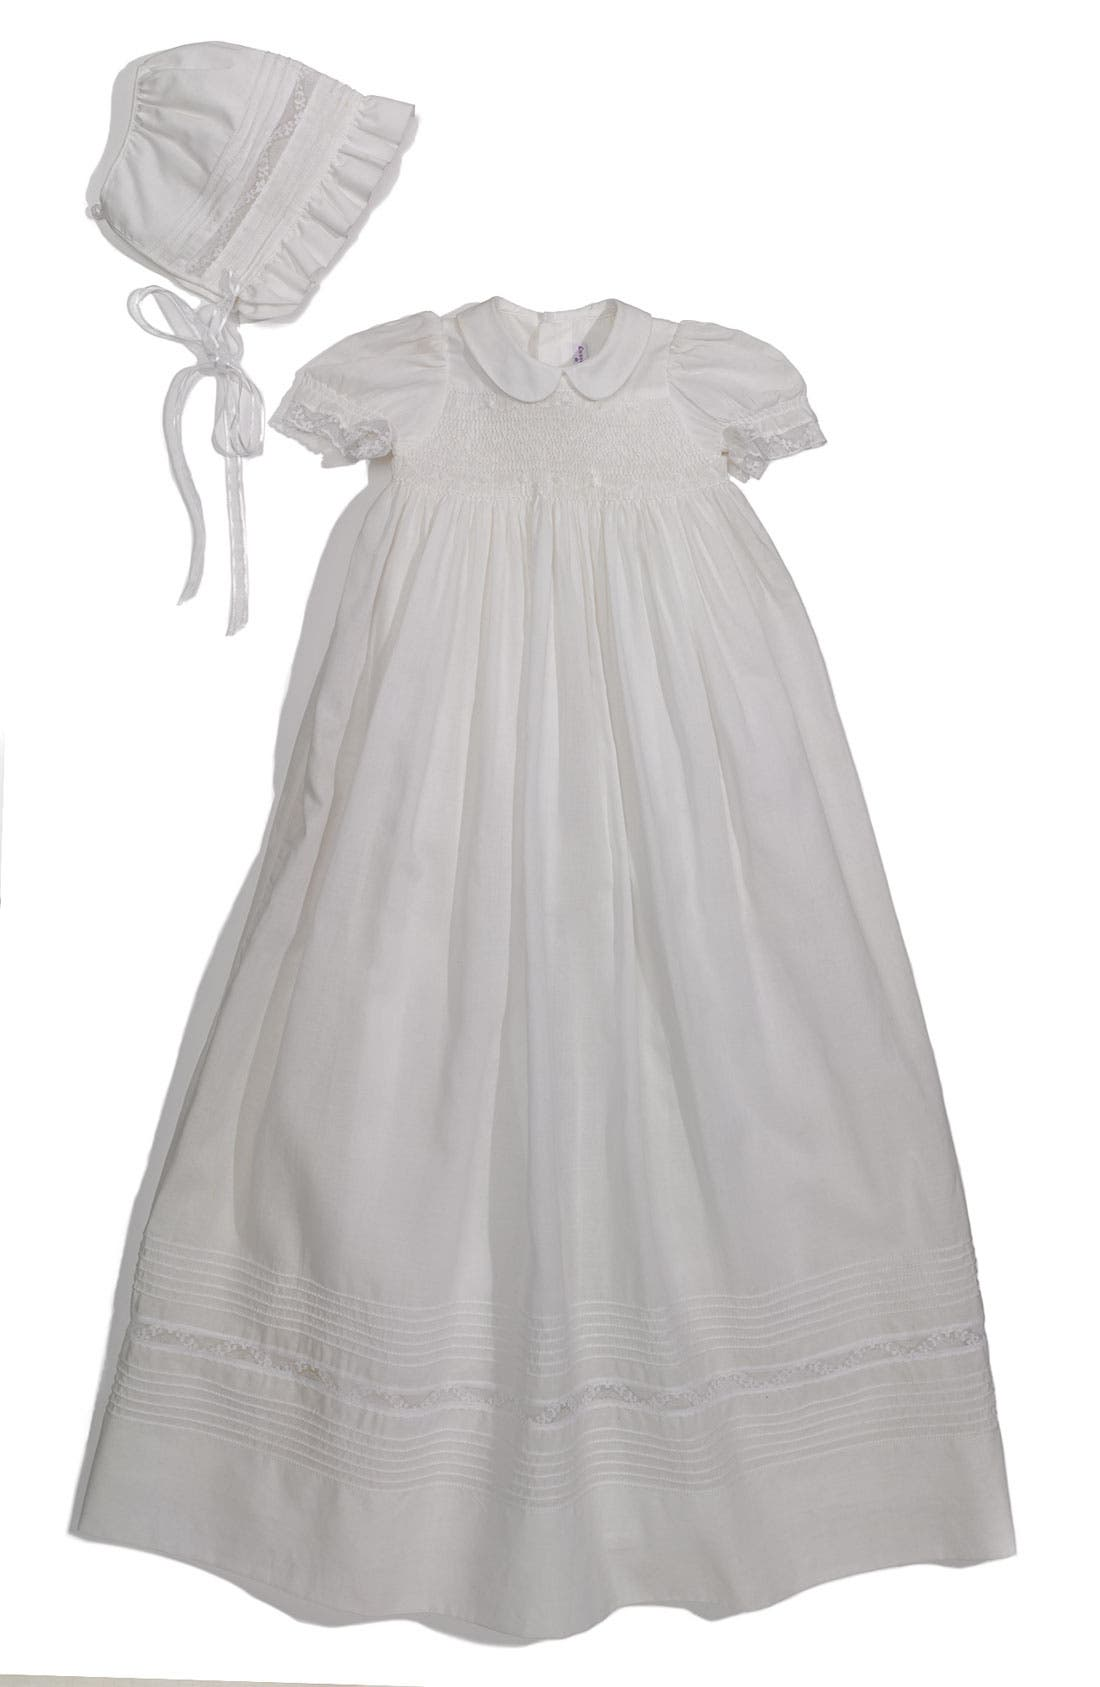 Main Image - Kissy Kissy Christening Gown (Infant)